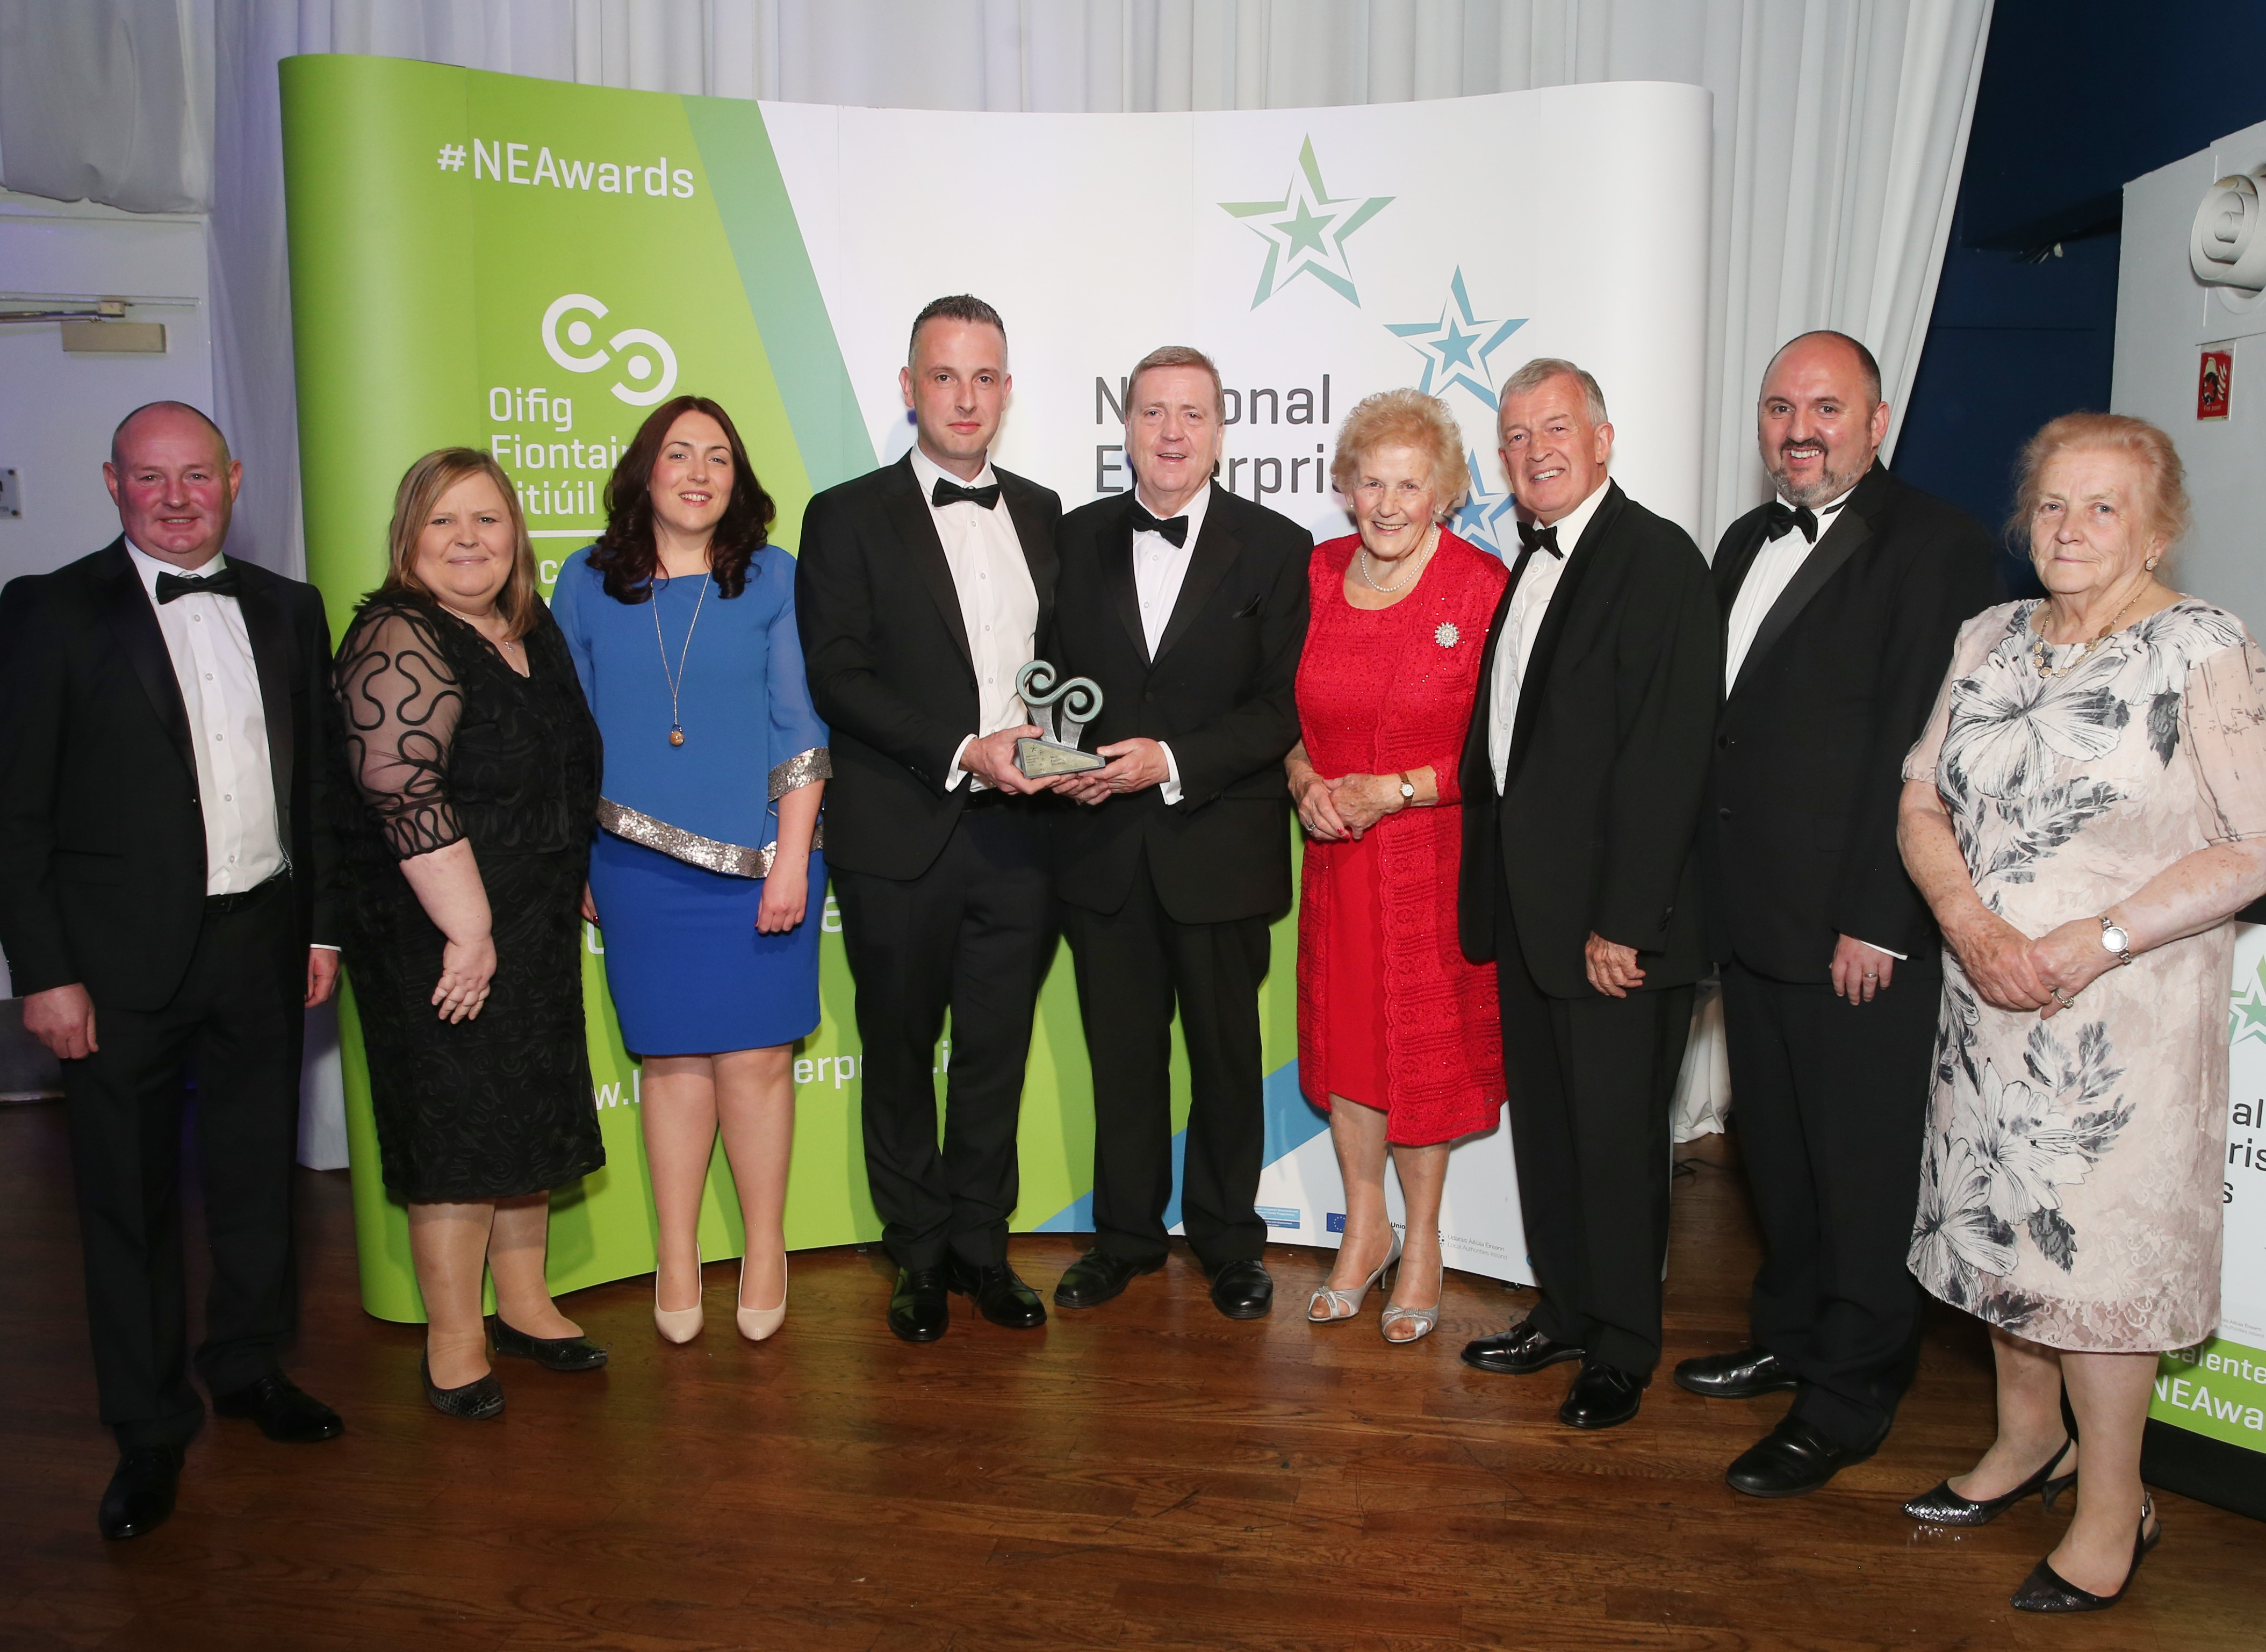 National Enterprise Awards Photo